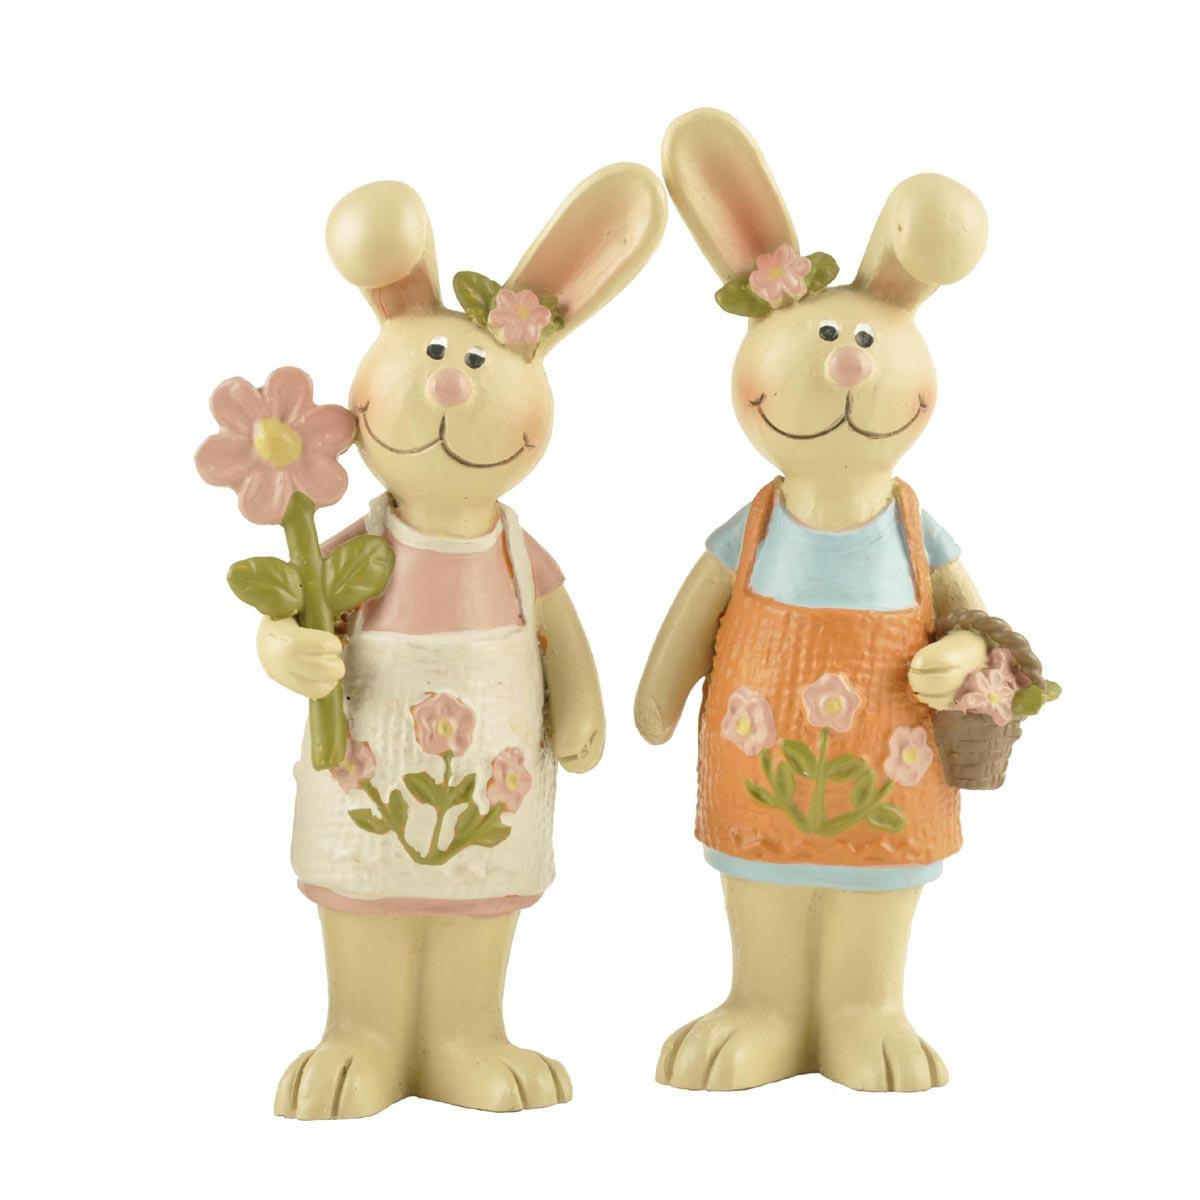 Ennas easter bunny figurines top brand micro landscape